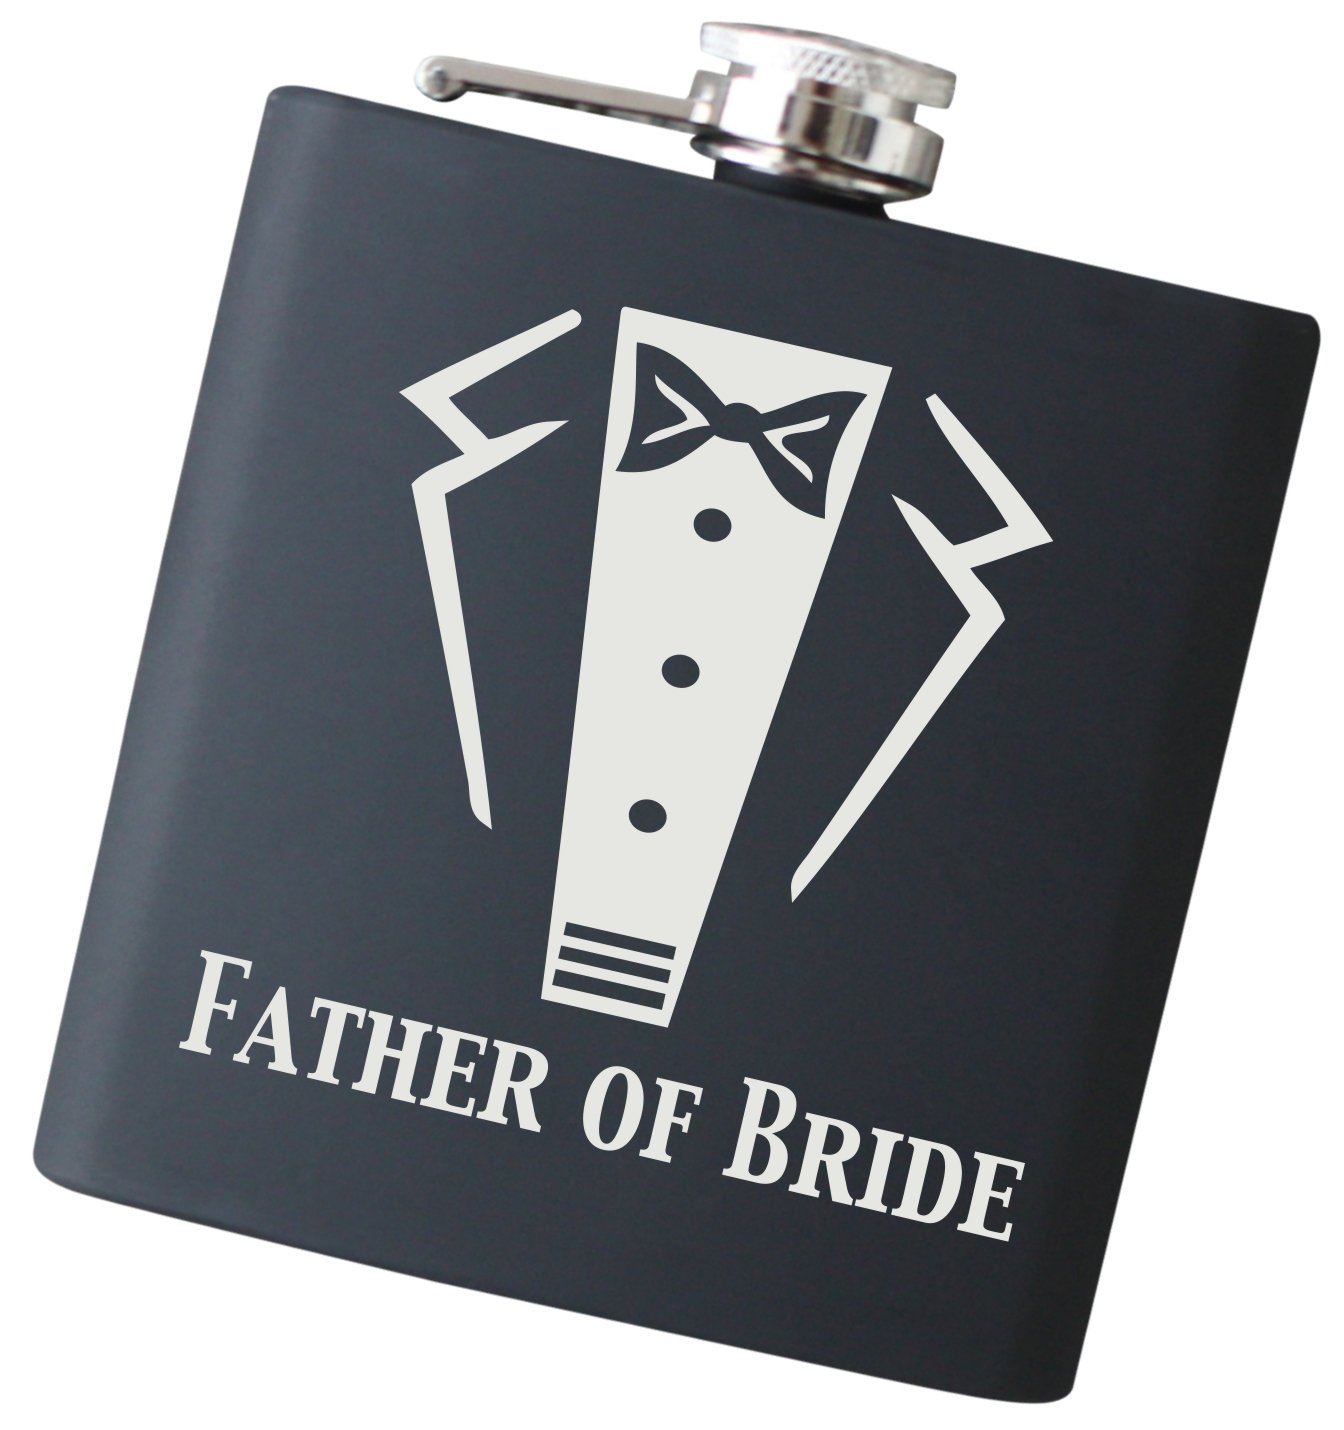 Engraved Best Man Tuxedo 6 oz Flask - Will You Be My Best Man? Liquor Hip Flask (Best Man) Frederick Engraving